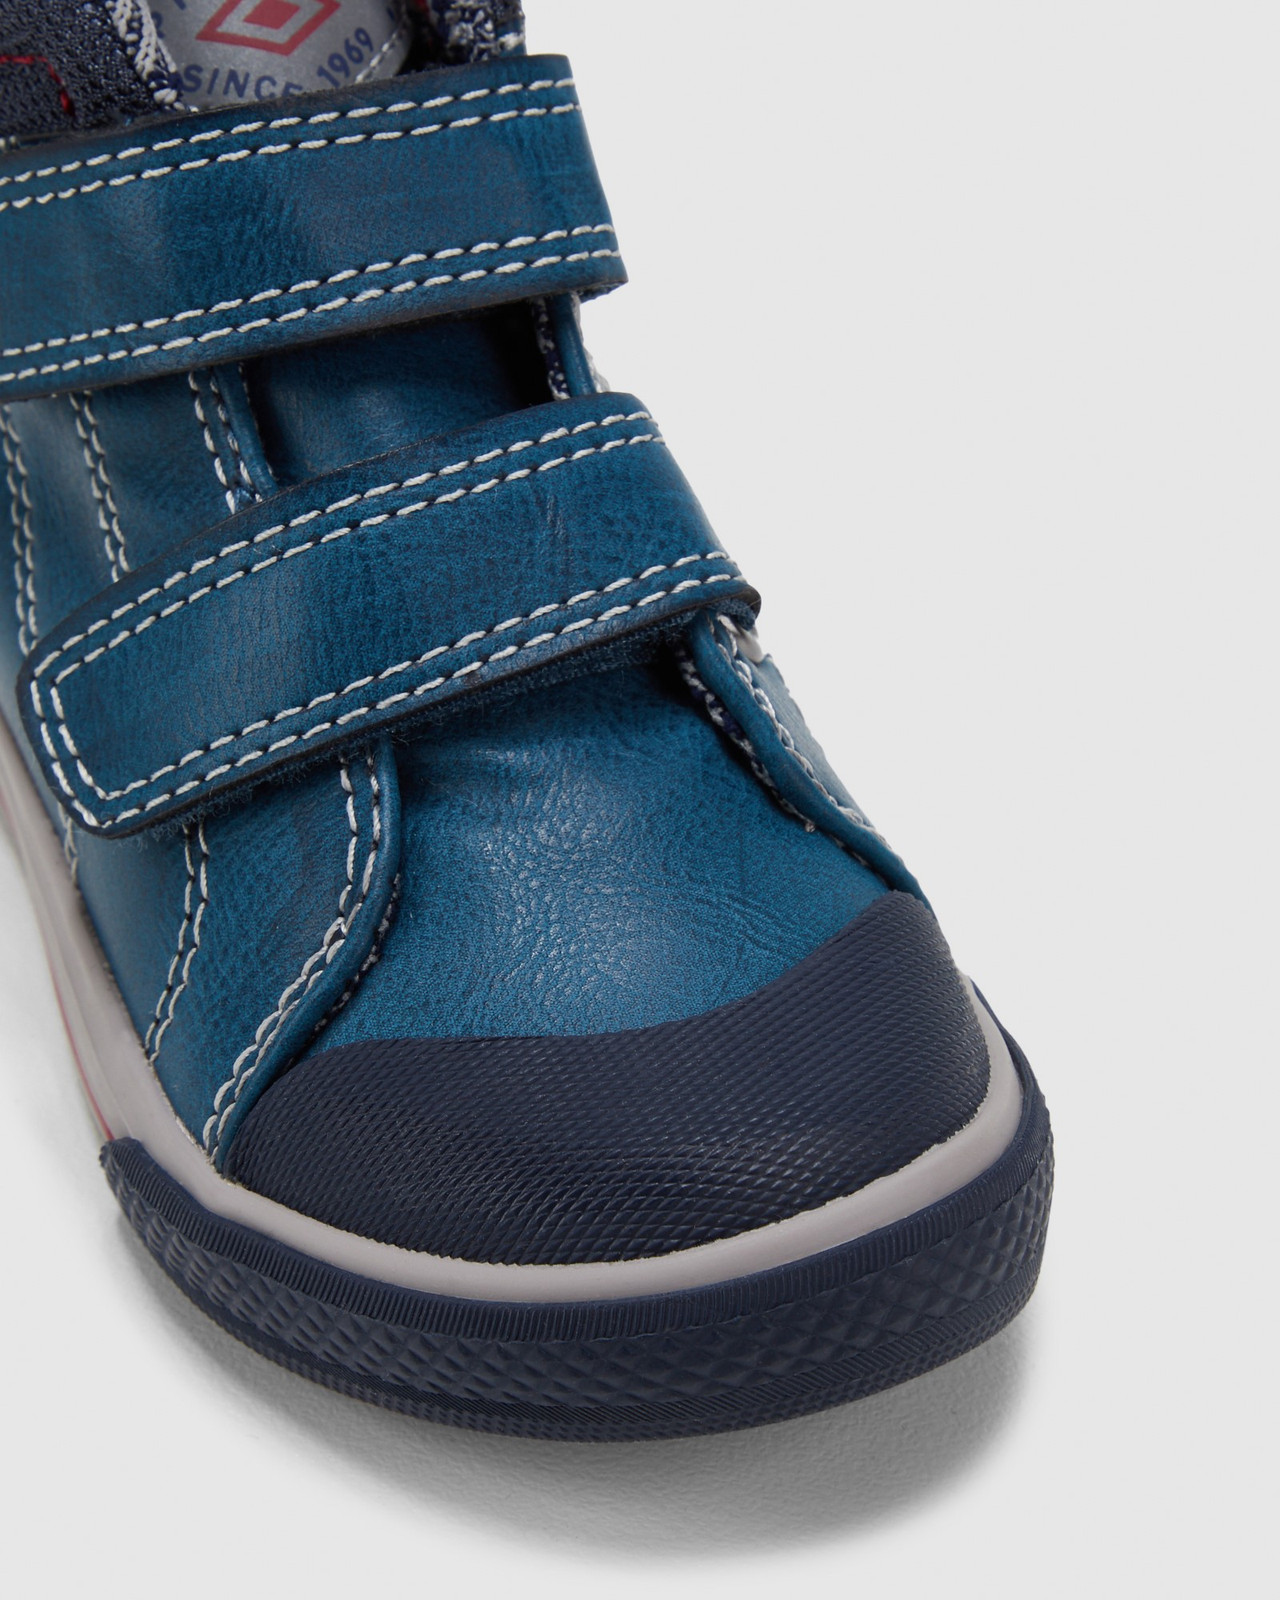 Shoes & Sox Boys Strap Boots Youth Petrol